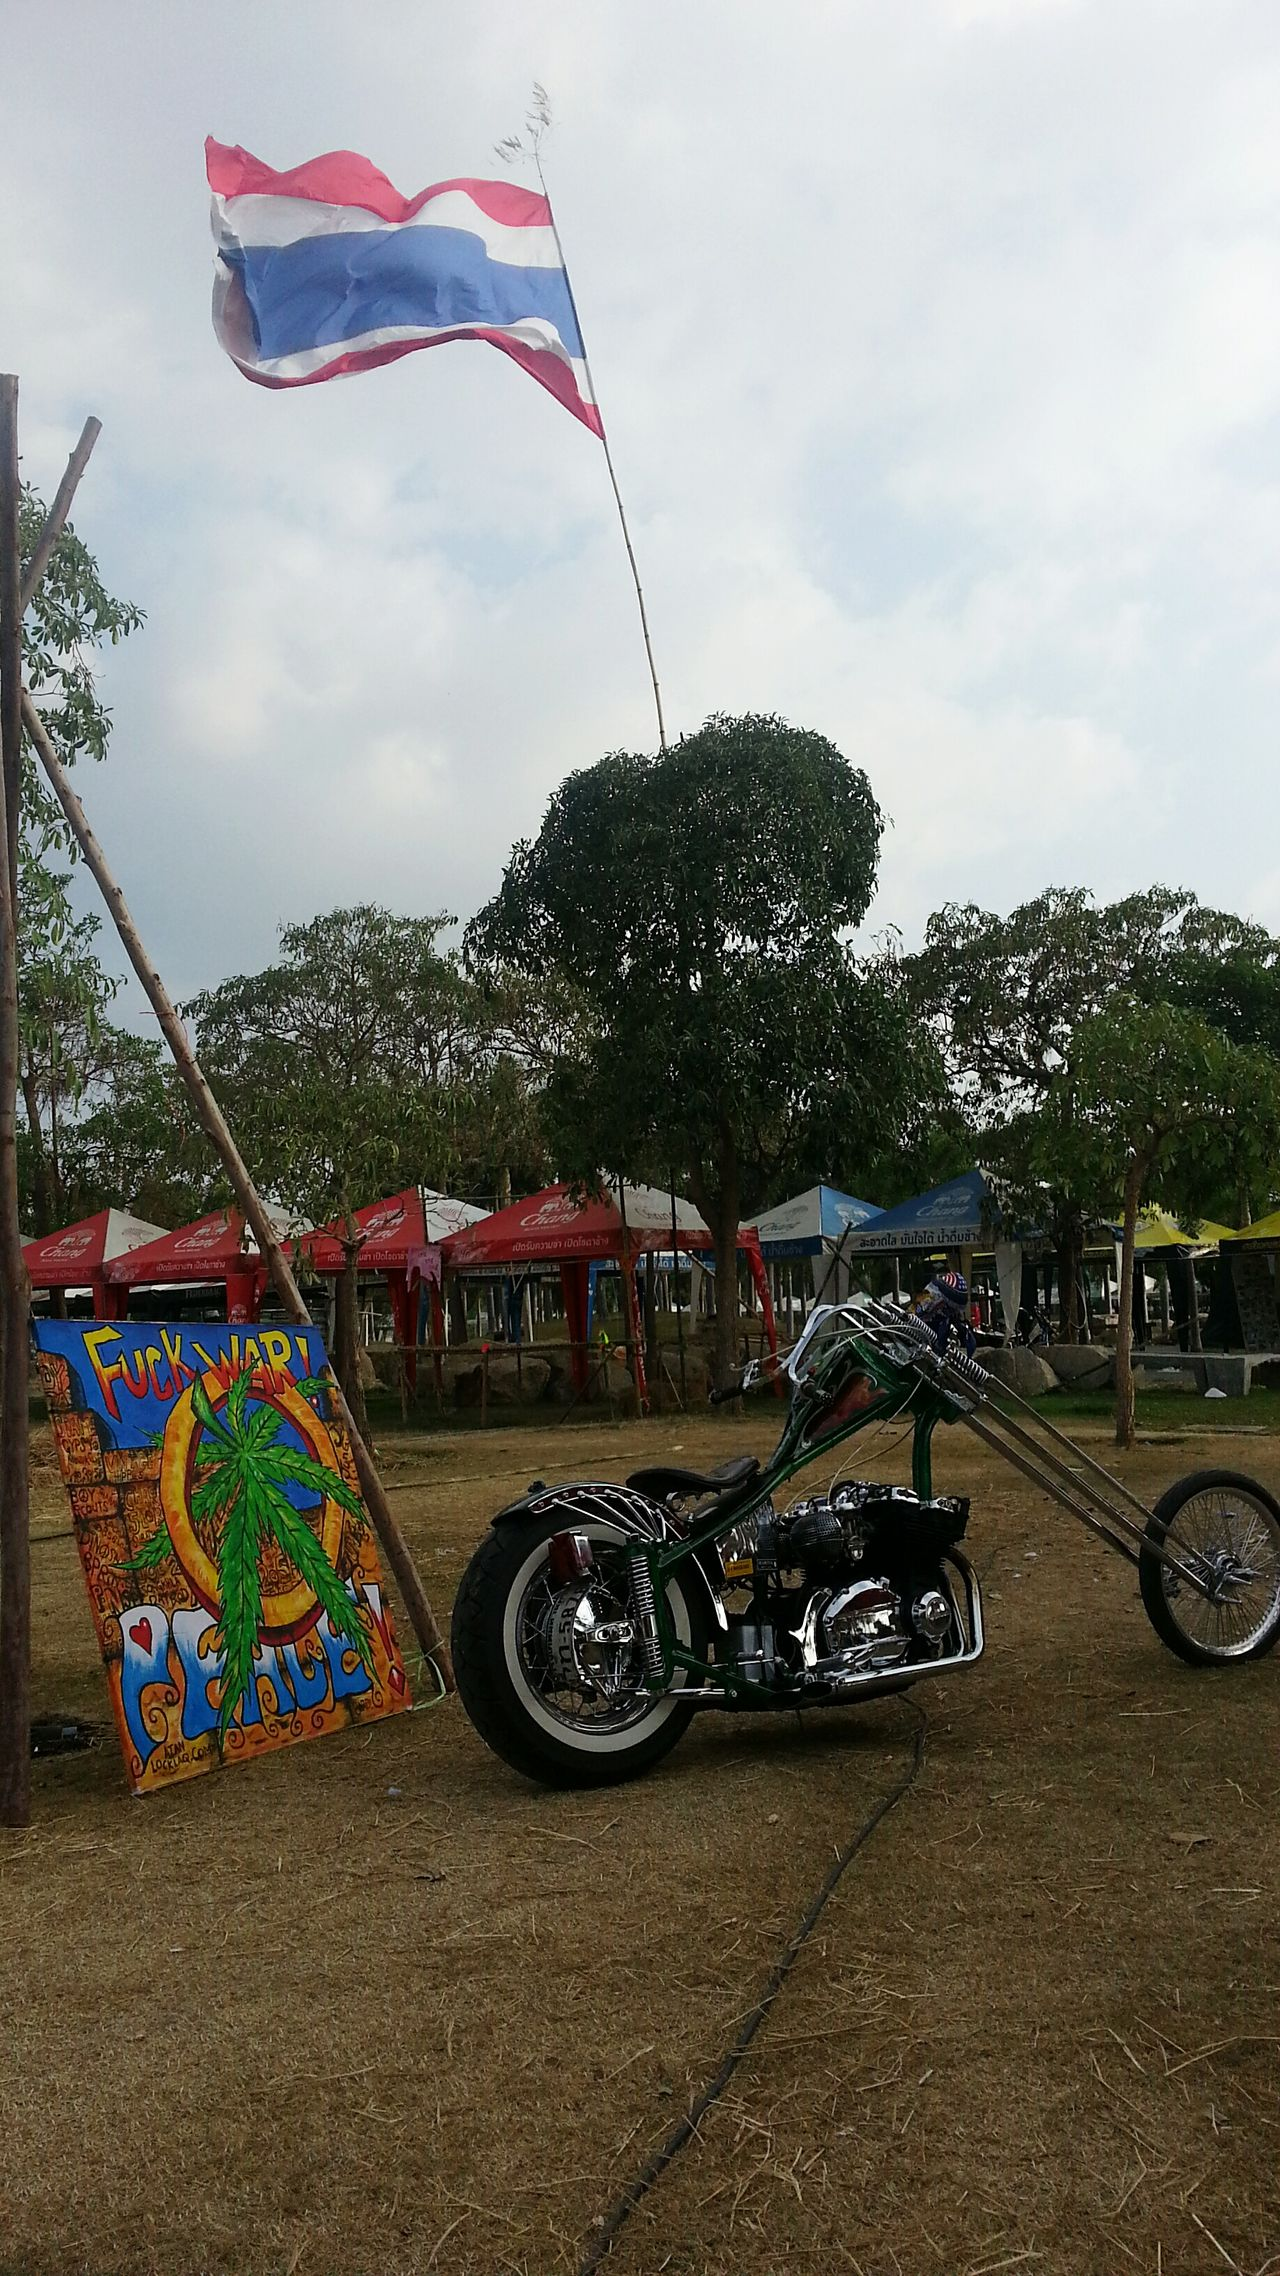 Make love not war. Bike Burapabikeweek Pataya Thailand Chopper Festival